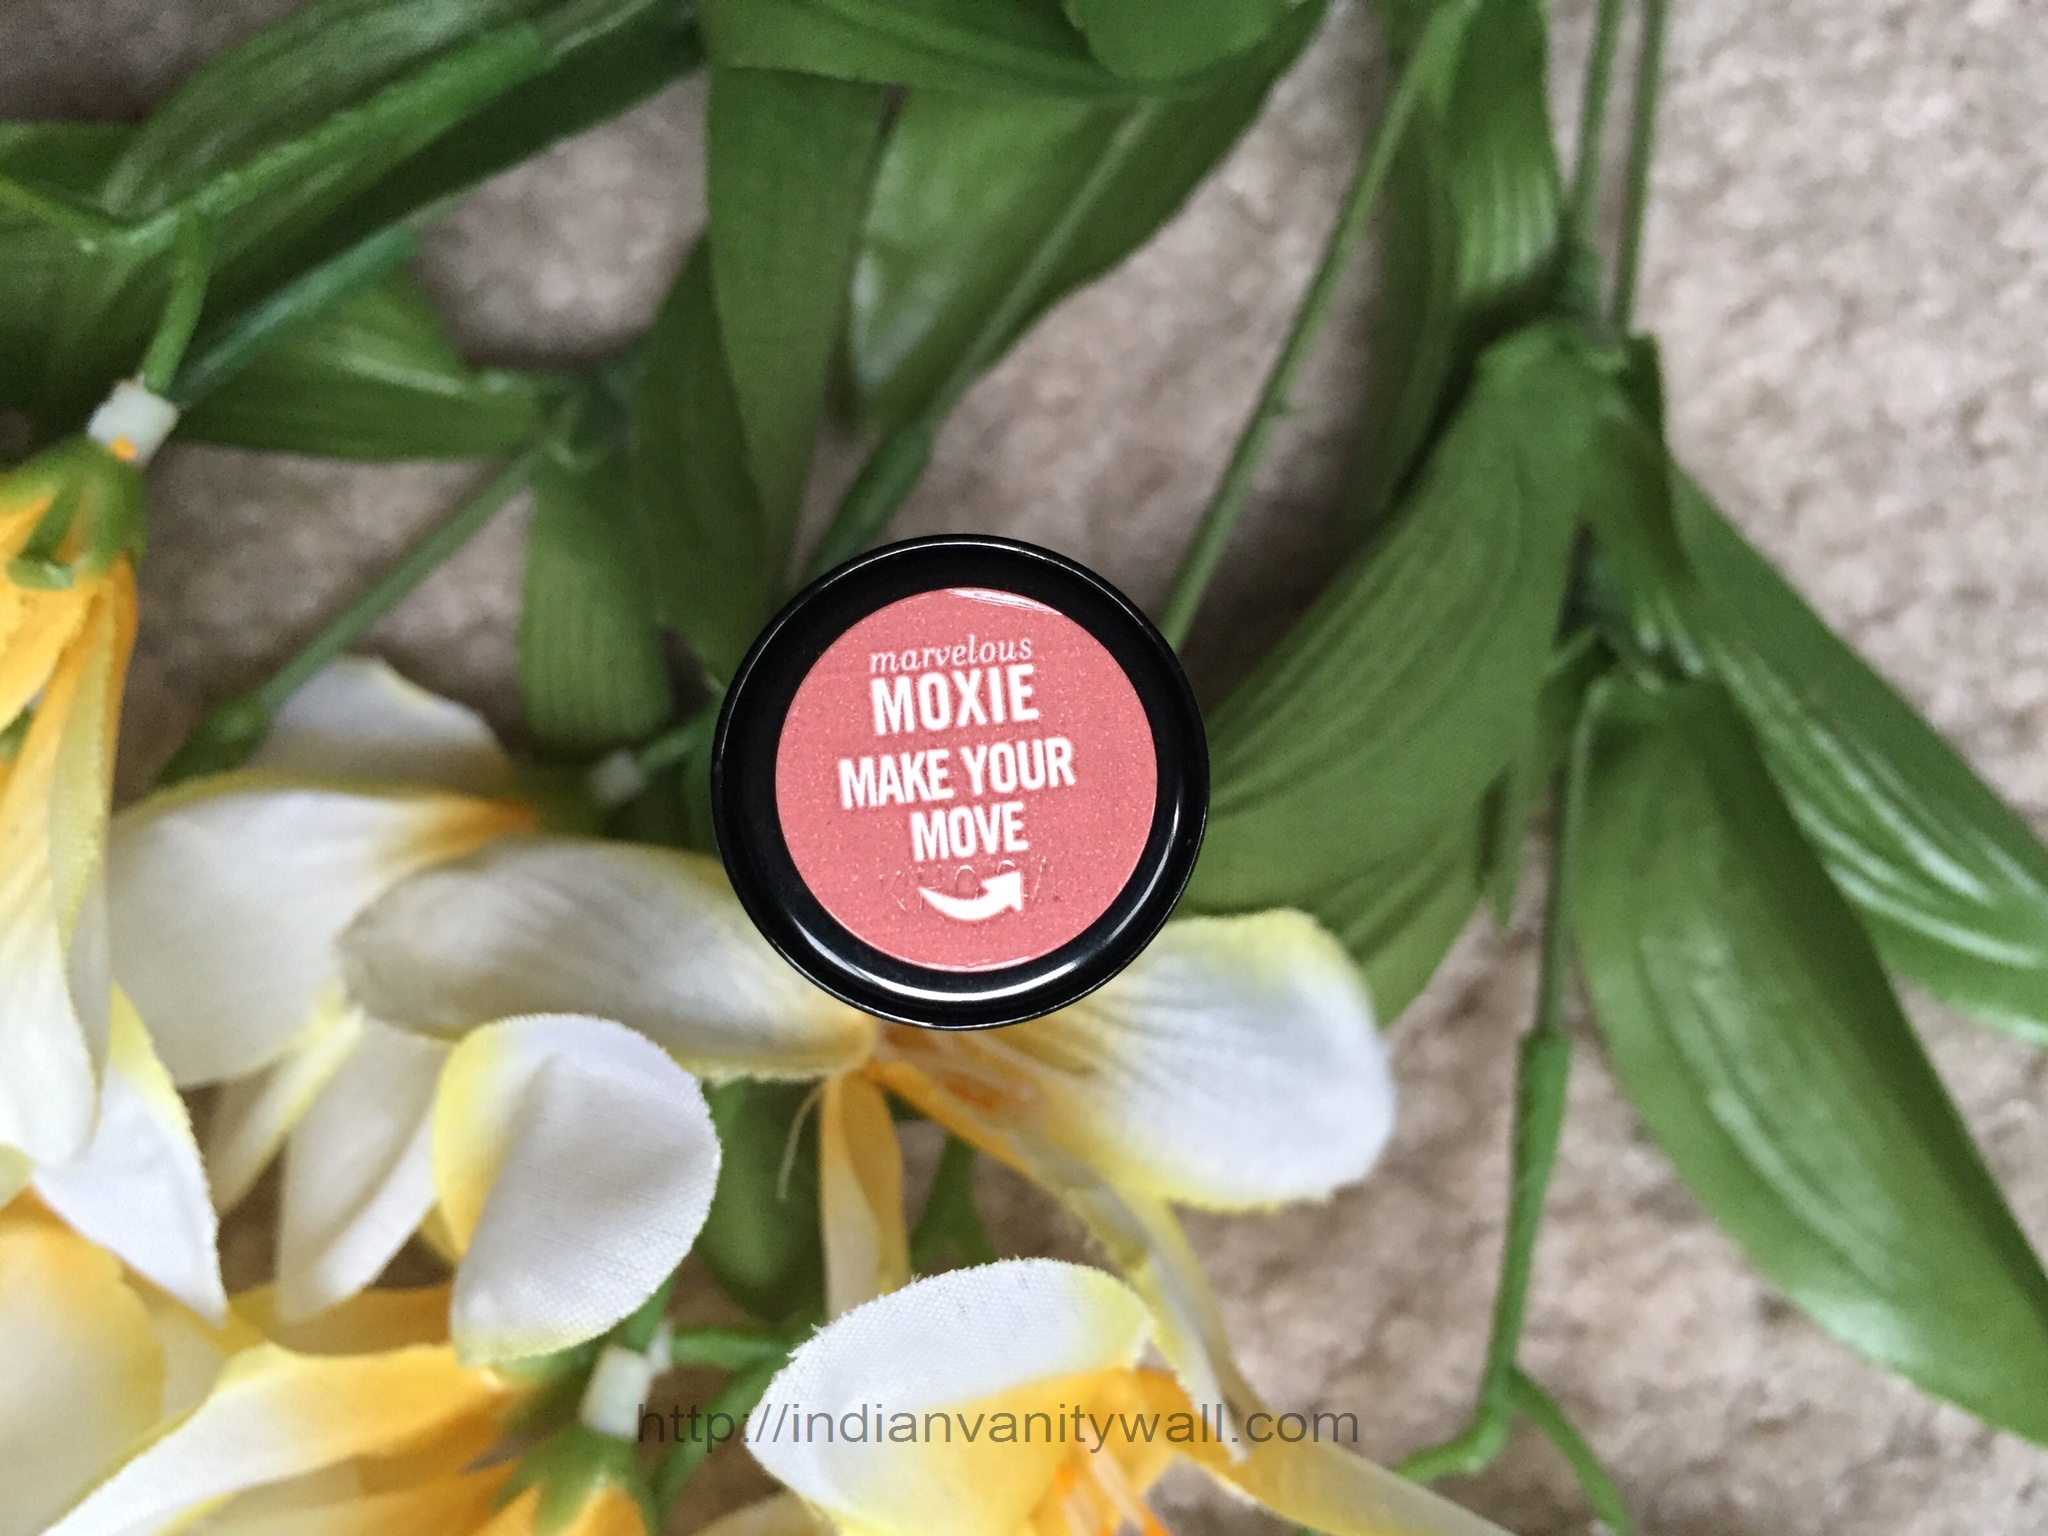 bareminerals marvelous moxie make your move